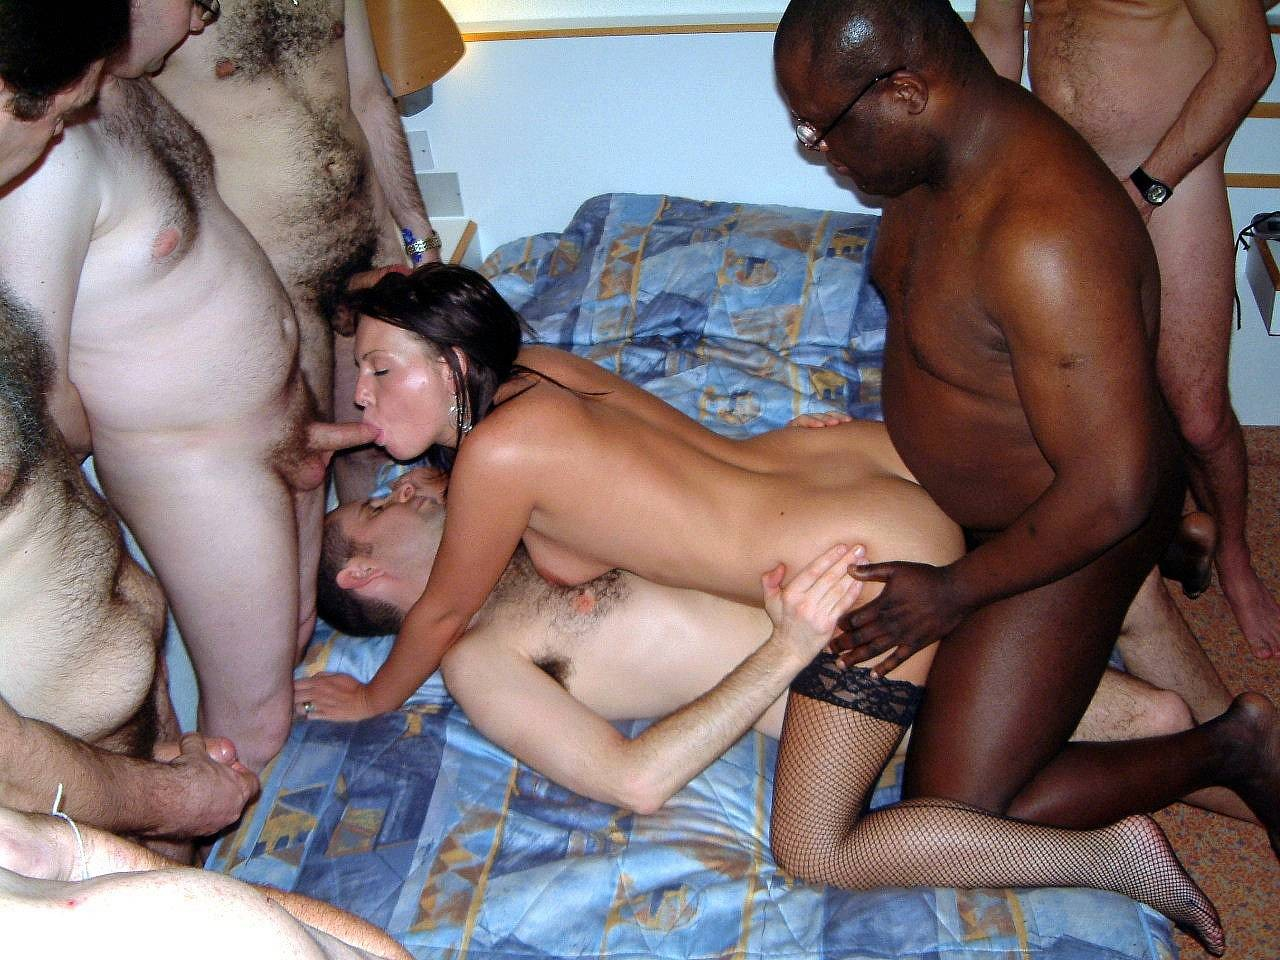 Very amateur black gangbang ass